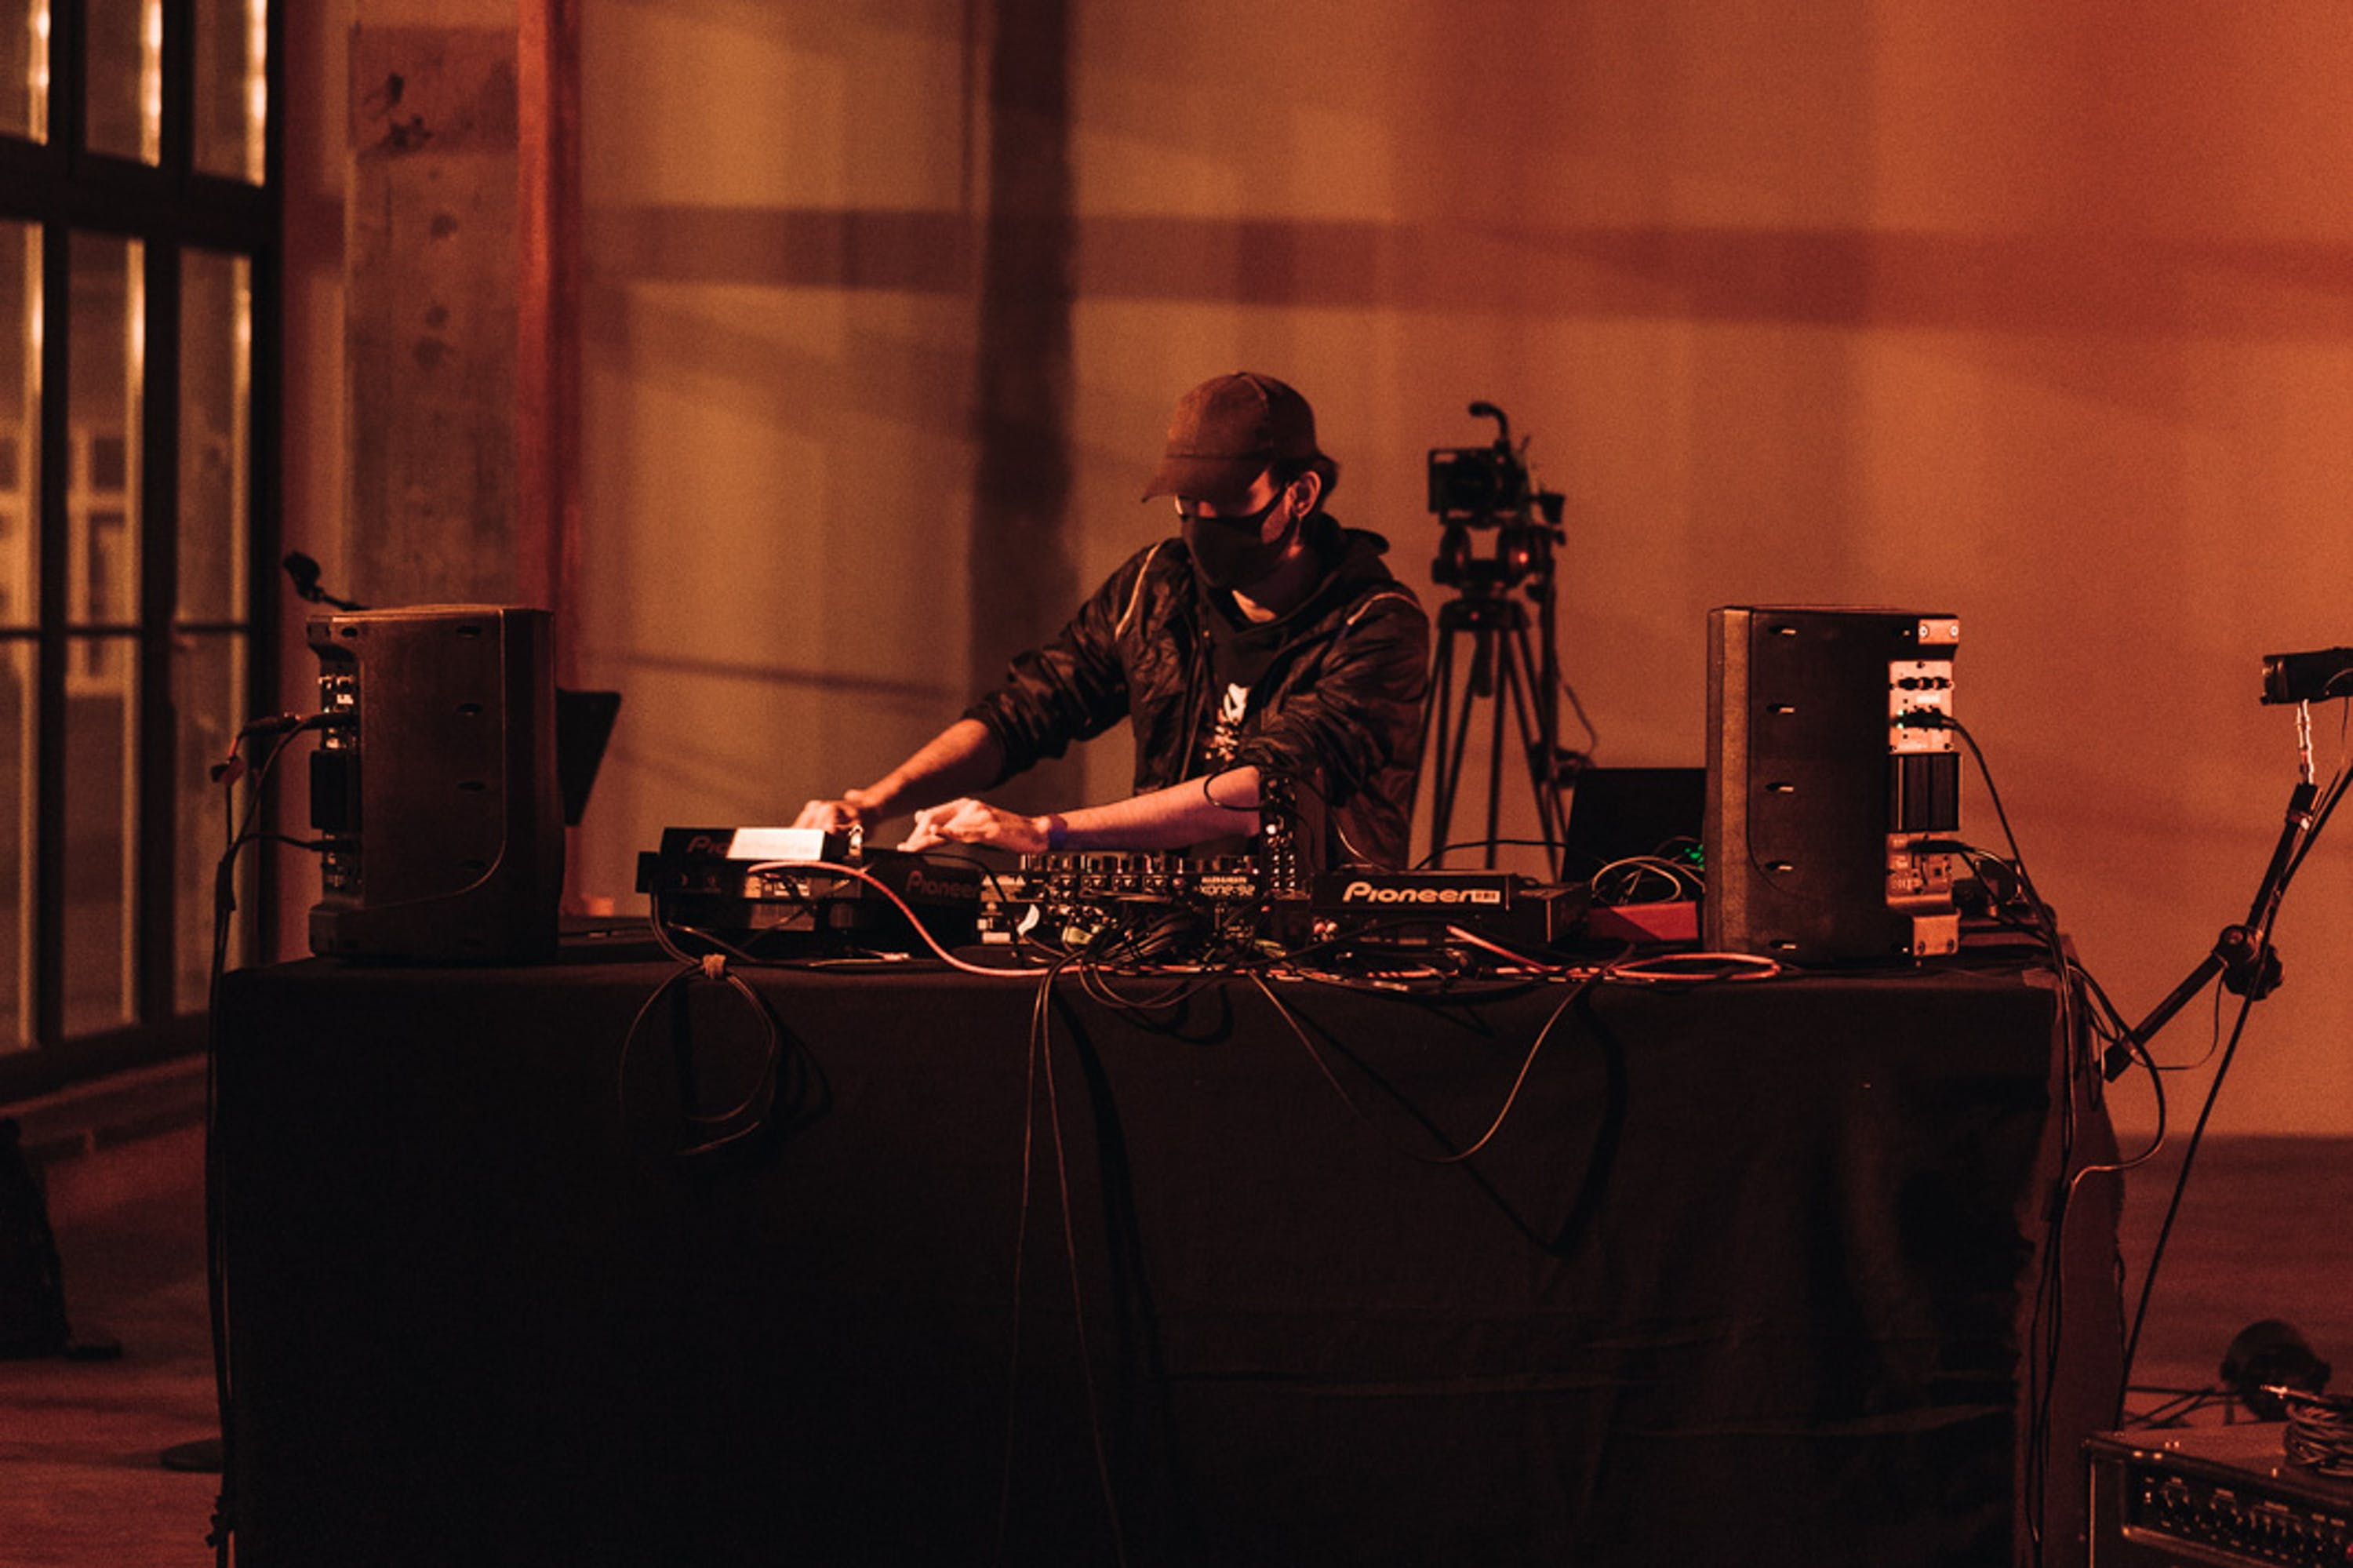 traumesser performance | Signals Festival 2020 at Catalyst Berlin | Photo by Dico Baskoro